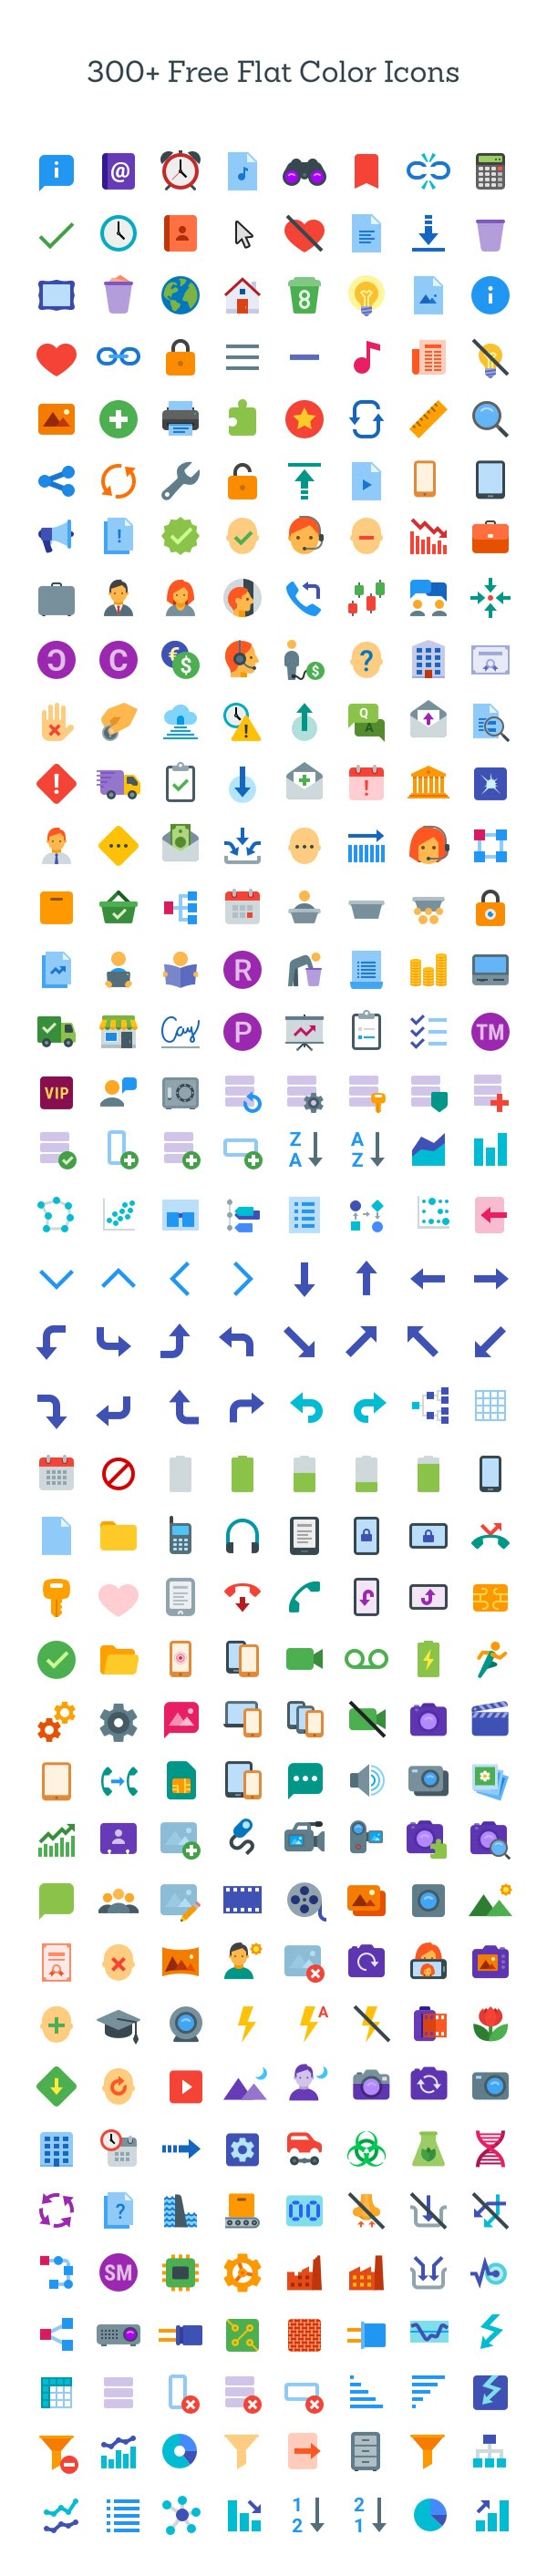 Free Download 300+ Flat Color Icons